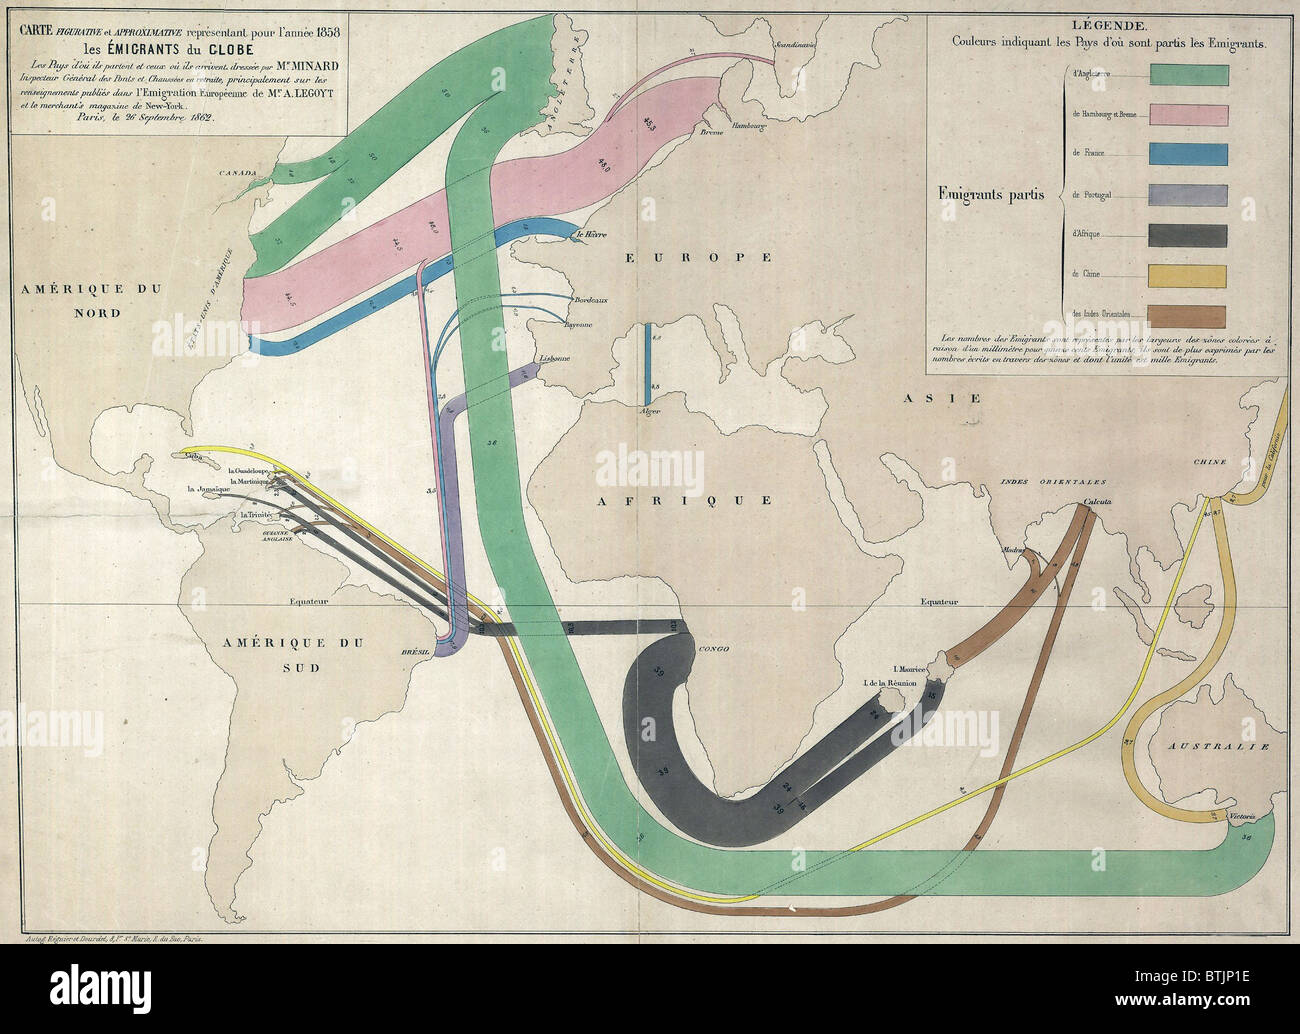 1858 French map showing immigration routes from Europe. The majority ...